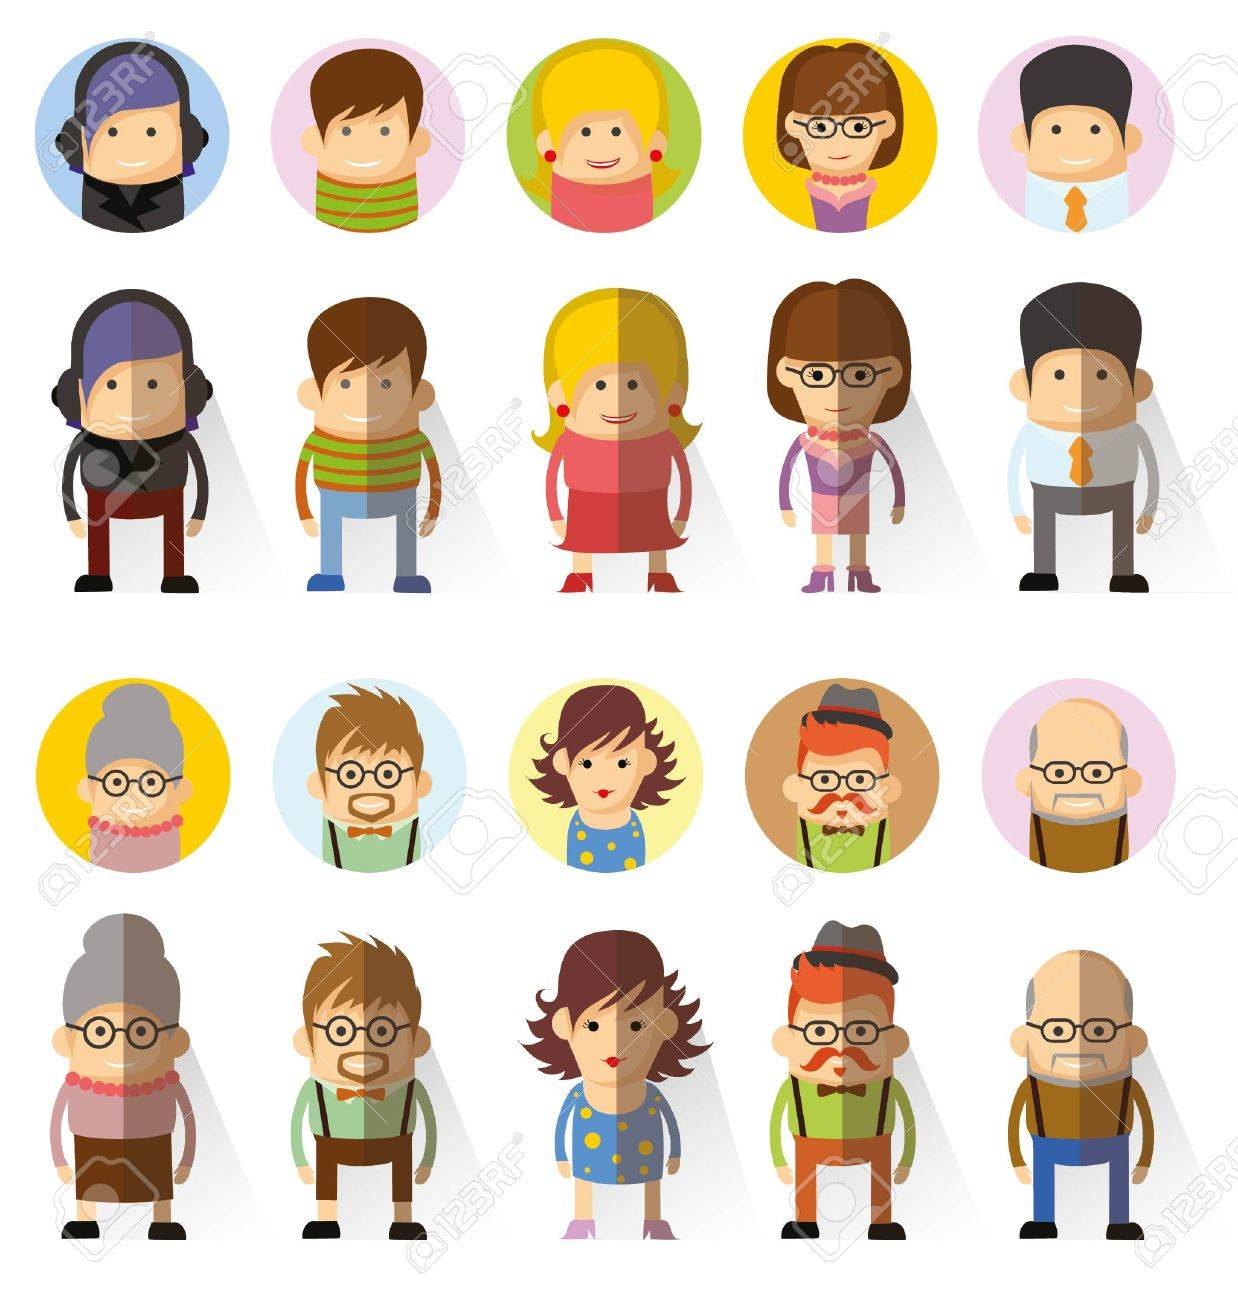 avatar character design set of vector cute character avatar icons in flat design